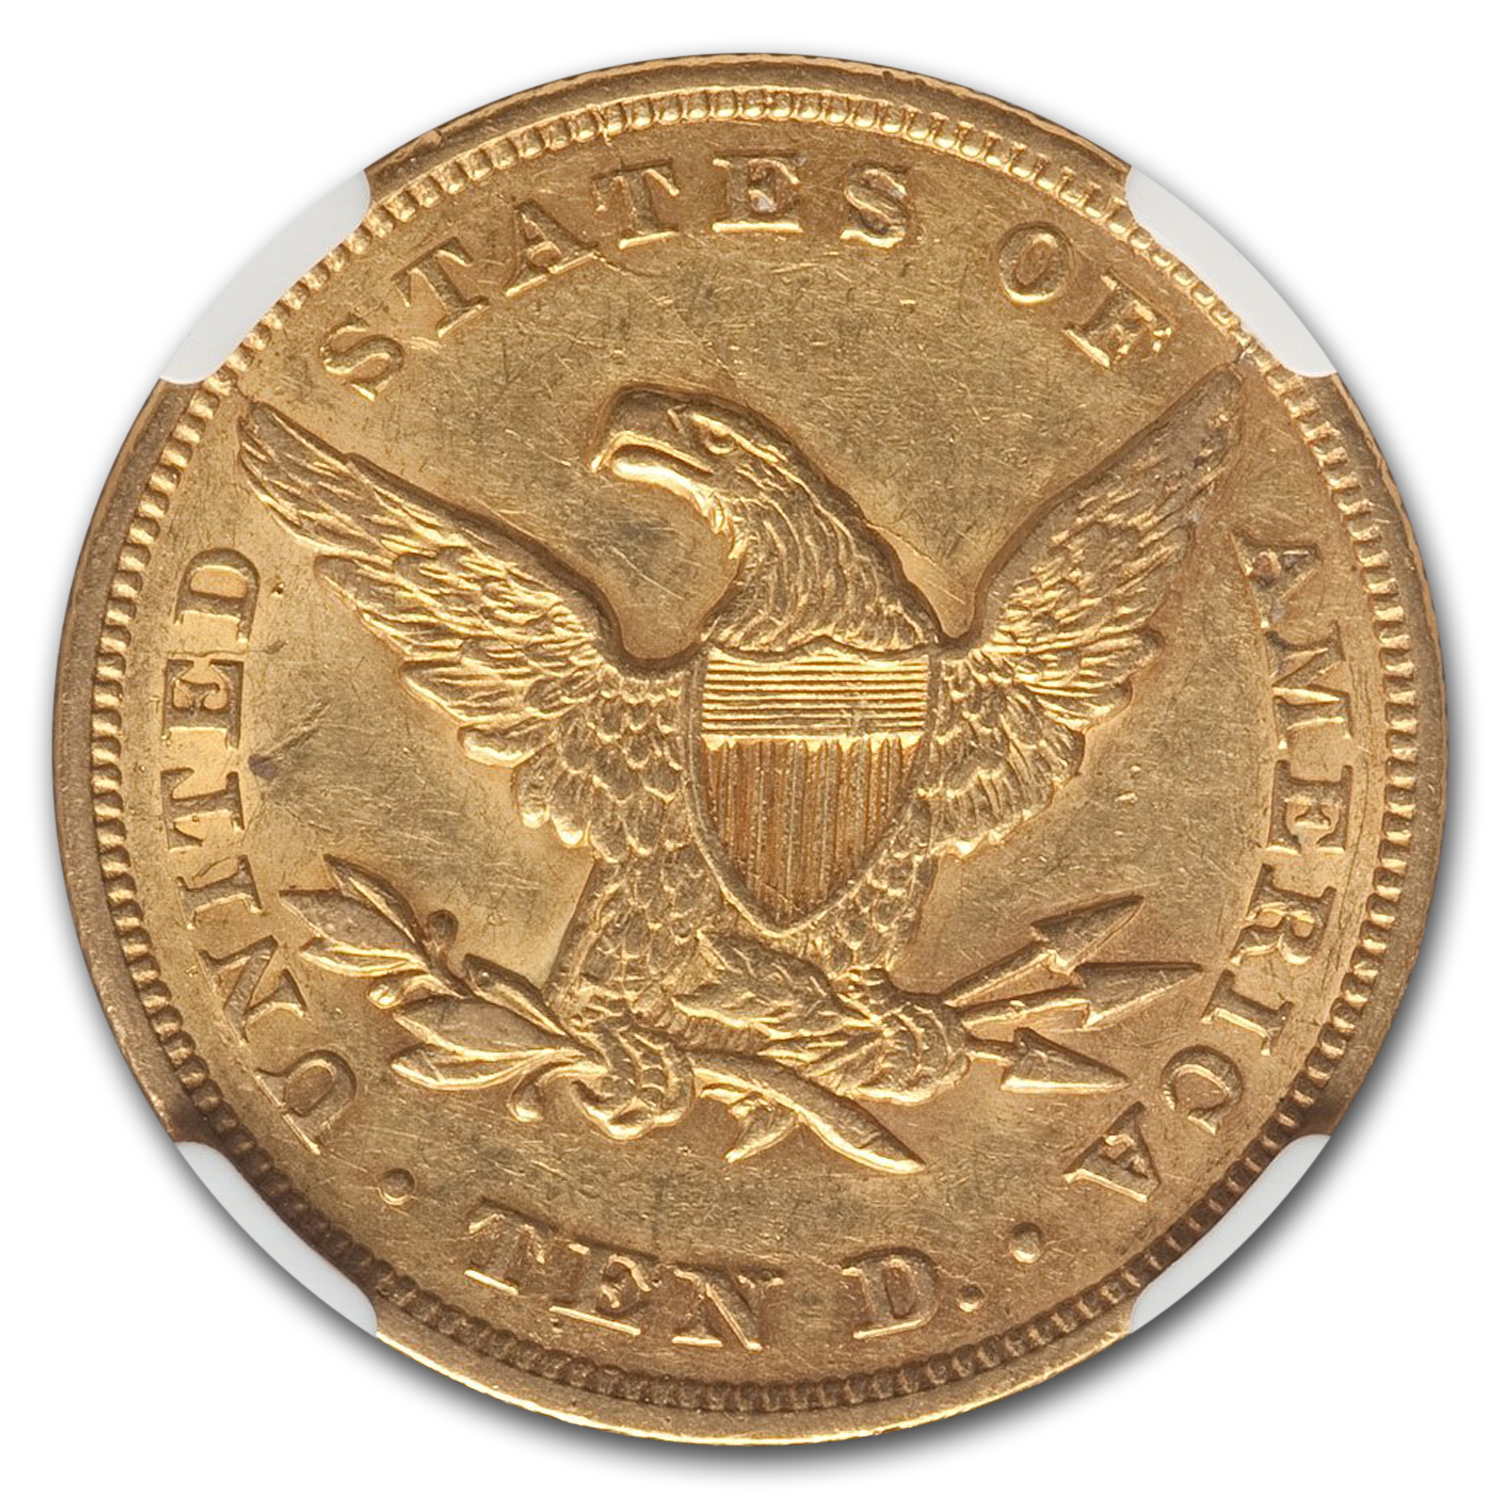 1850 $10 Liberty Gold Eagle Large Date - AU-55 NGC